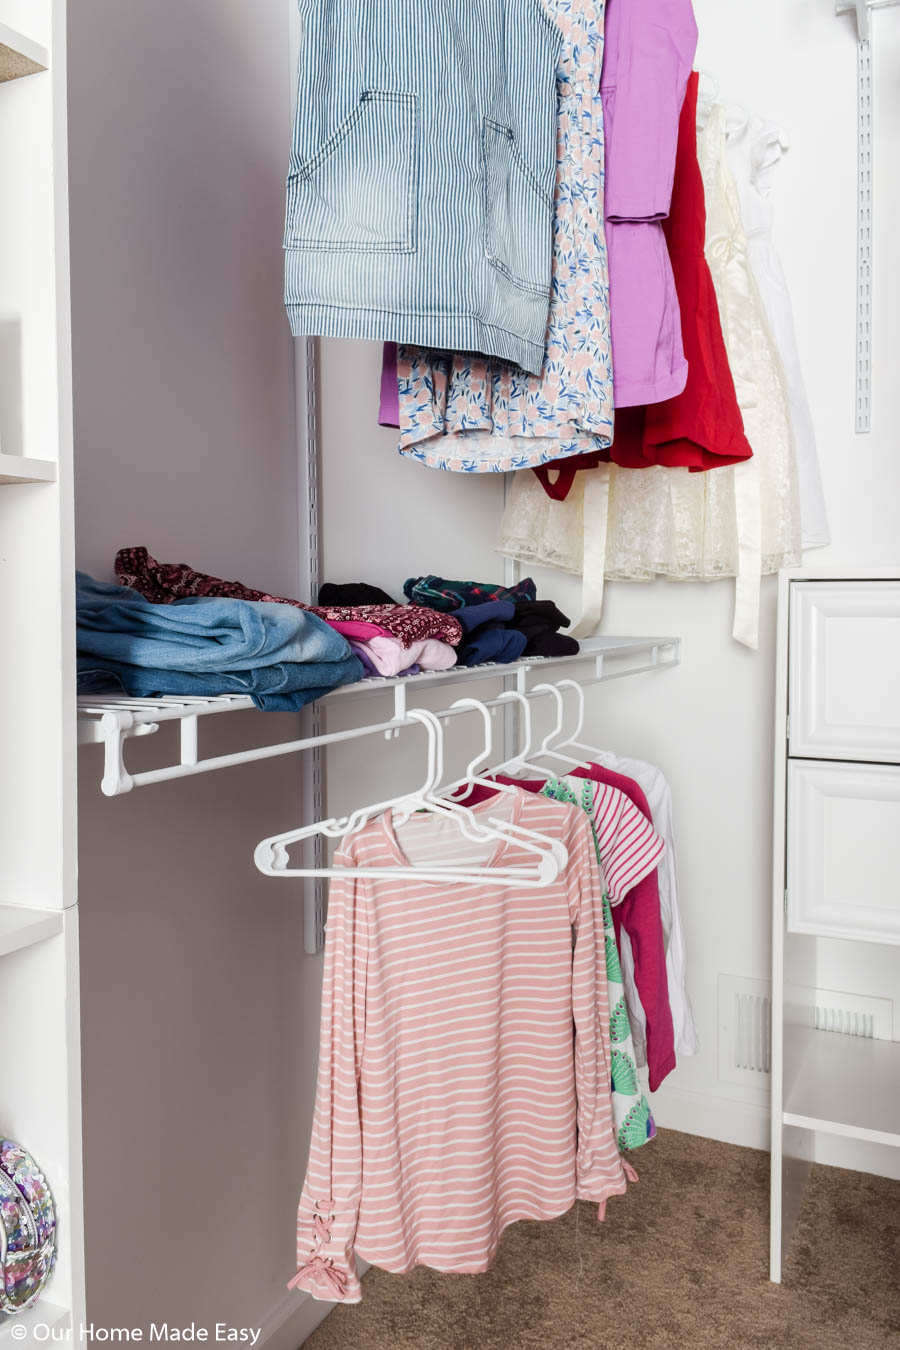 This adjustable shelving is a great option for closets, as you can more and adjust it as needed